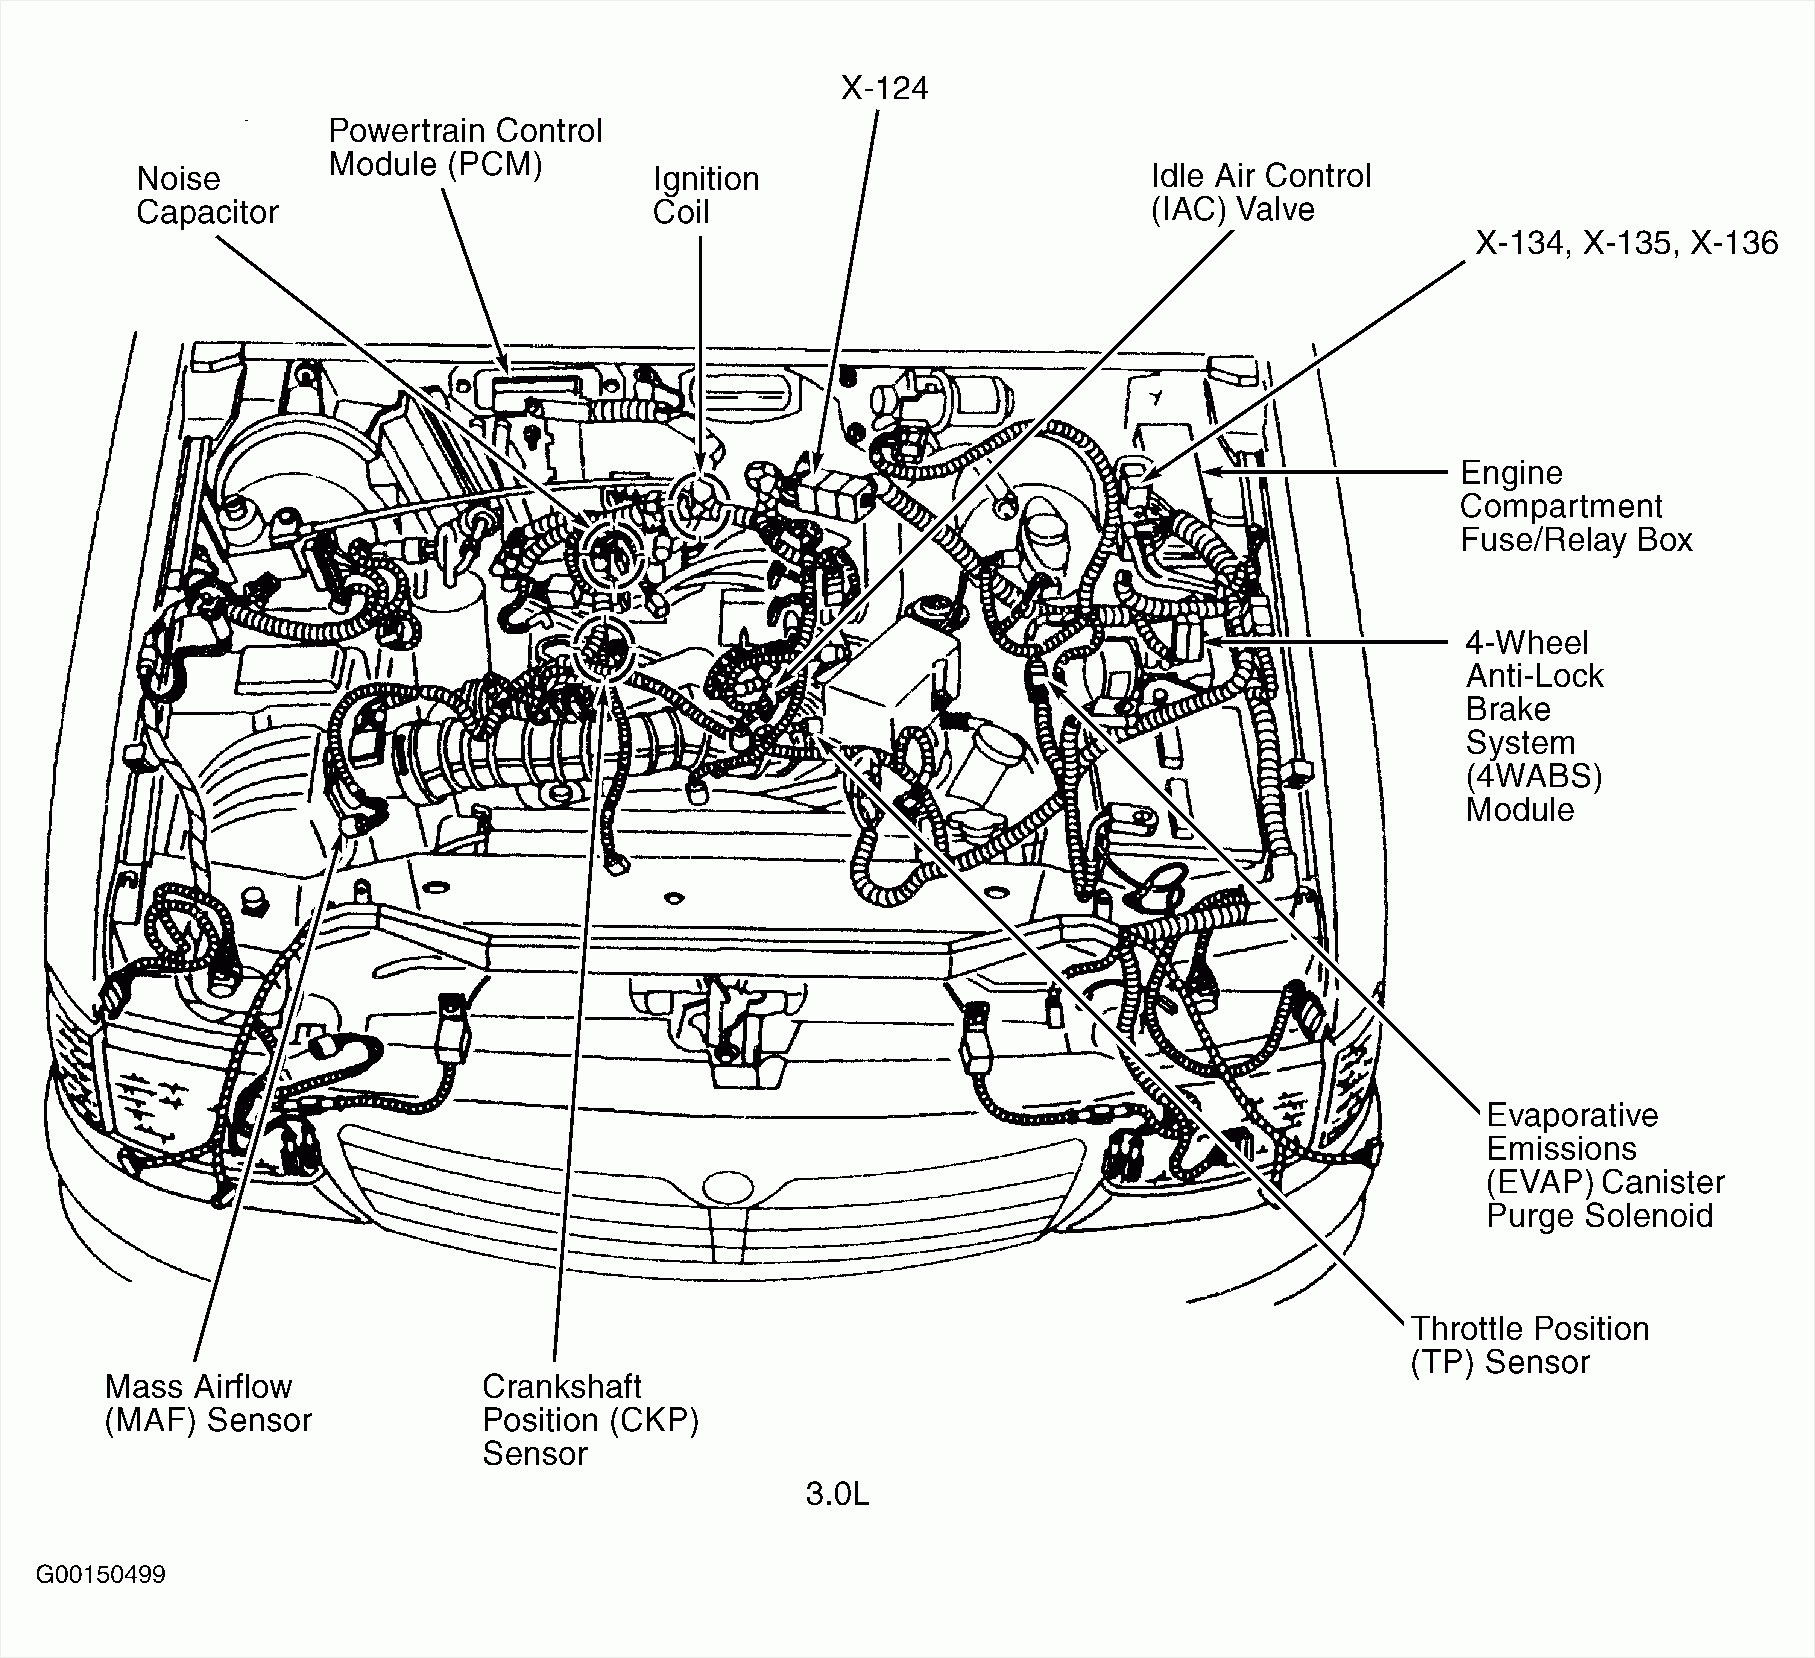 2000 mercury sable v6 3 0 engine diagram data wiring diagram 2005 Mercury Sable Engine Diagram